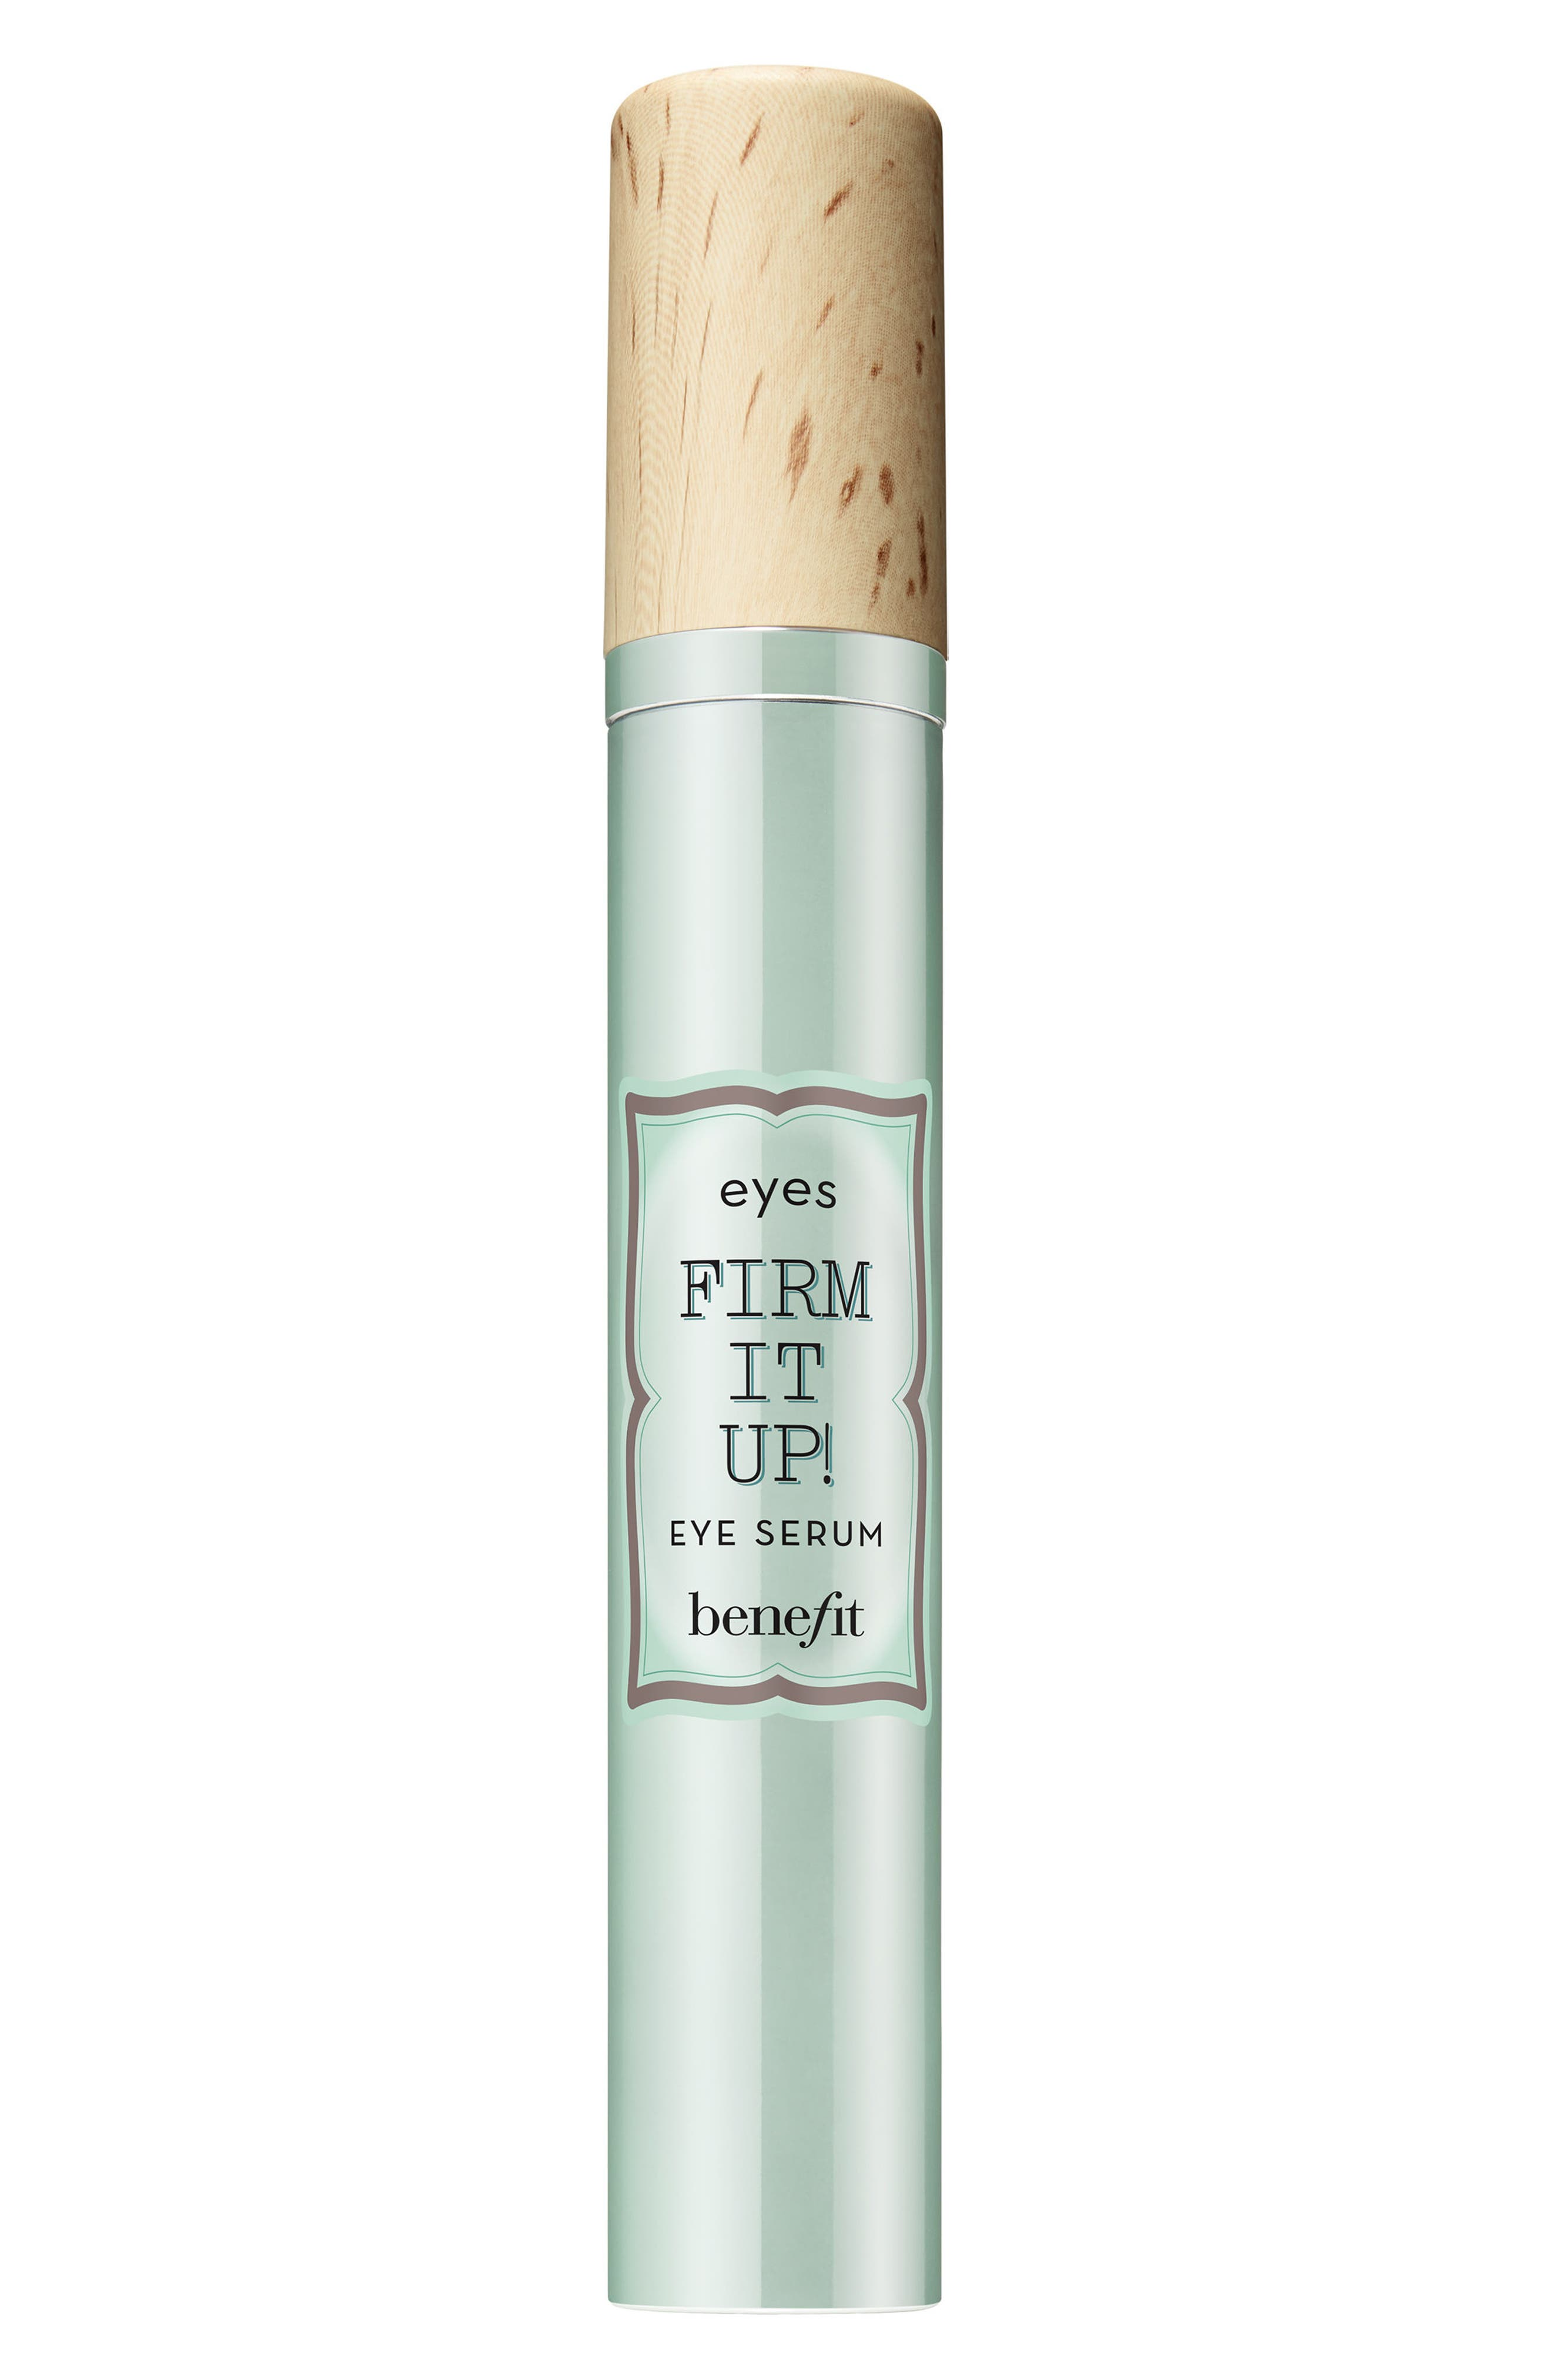 Benefit Firm It Up! Eye Serum,                             Alternate thumbnail 3, color,                             No Color